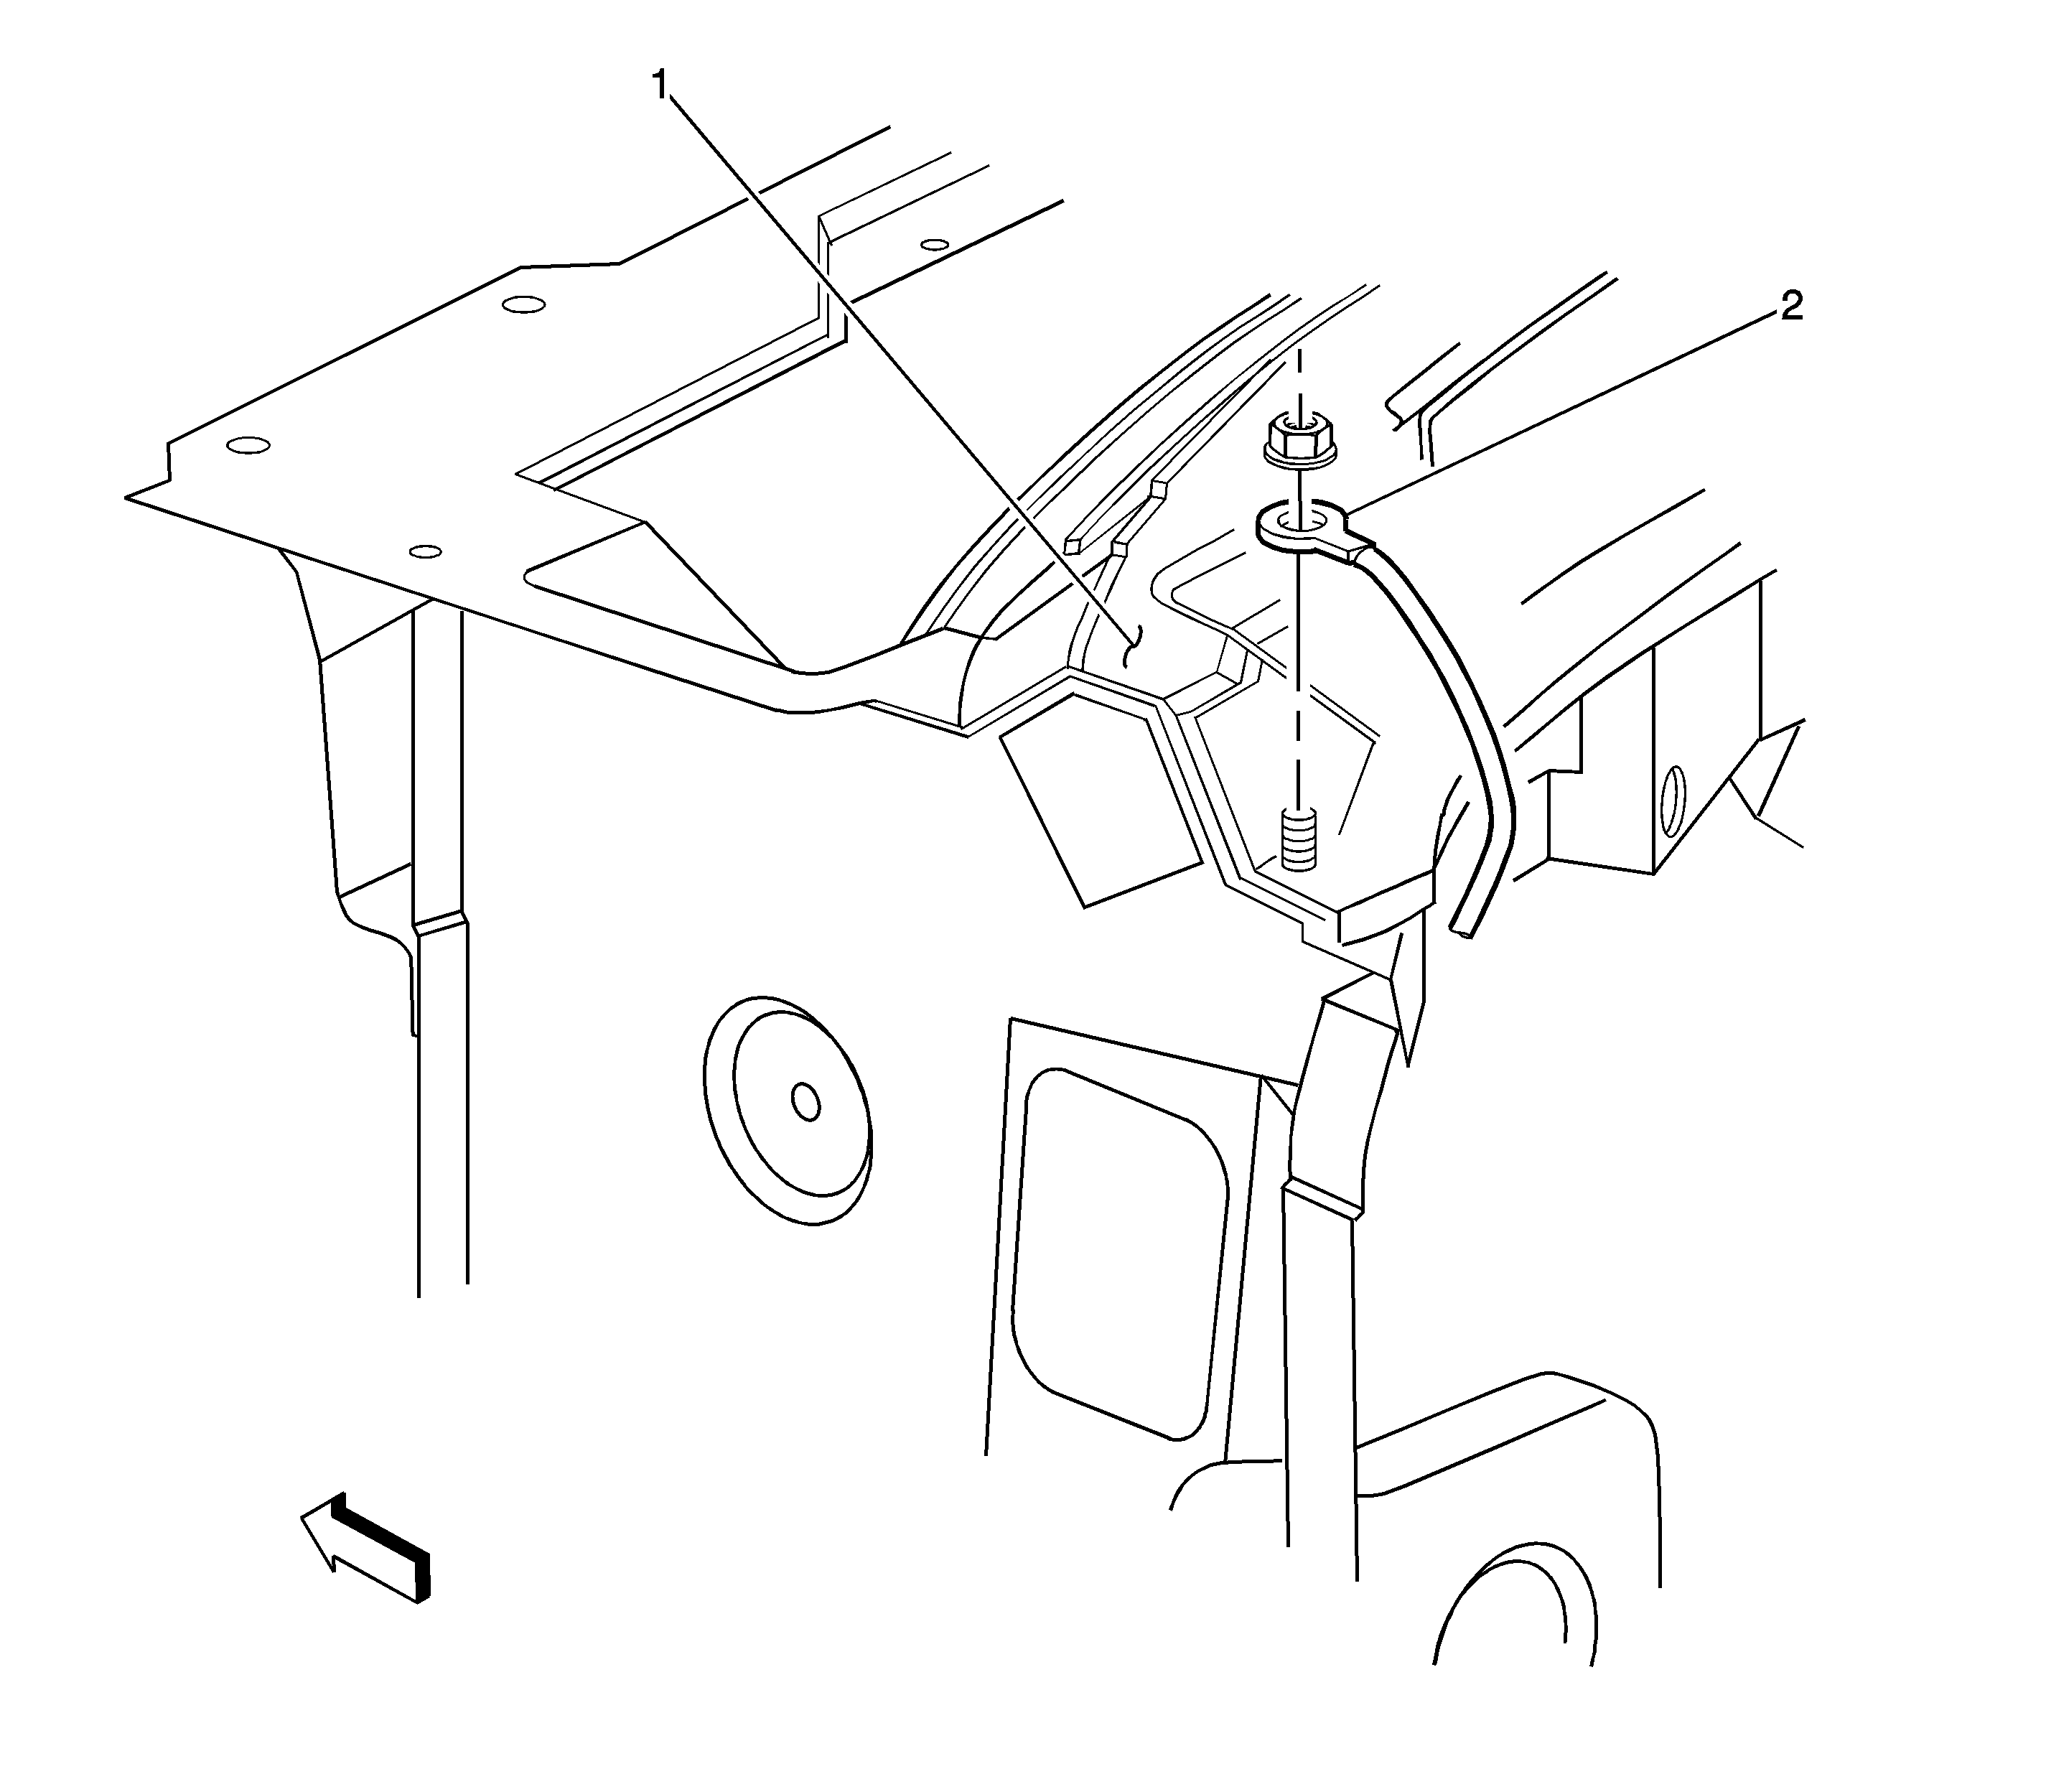 i need to know the location of the g200 ground wire in my 2004 chevy silverado 2500hd duramax